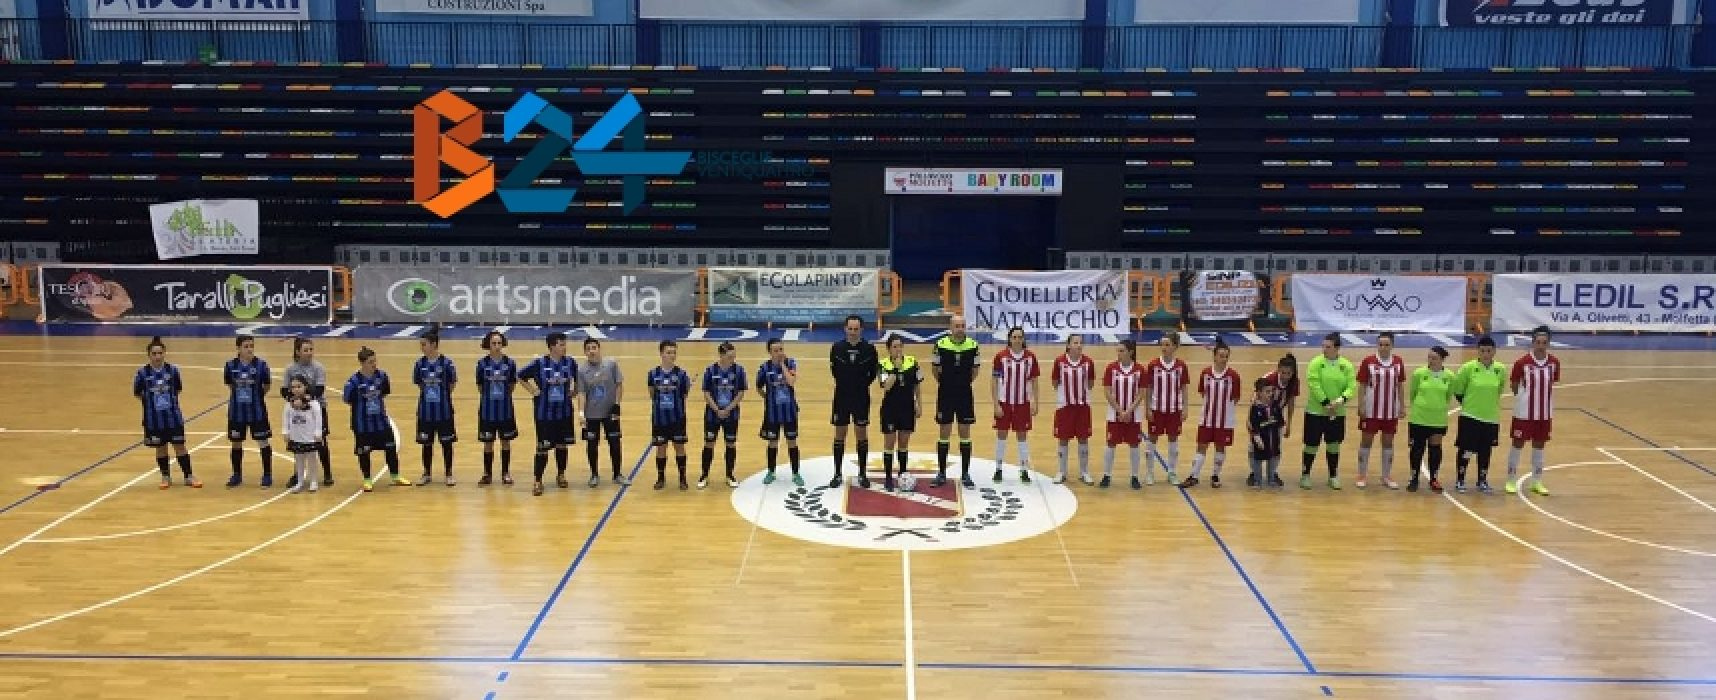 Speranze salvezza per Arcadia, euforia playoff per il Futsal Bisceglie / CLASSIFICHE